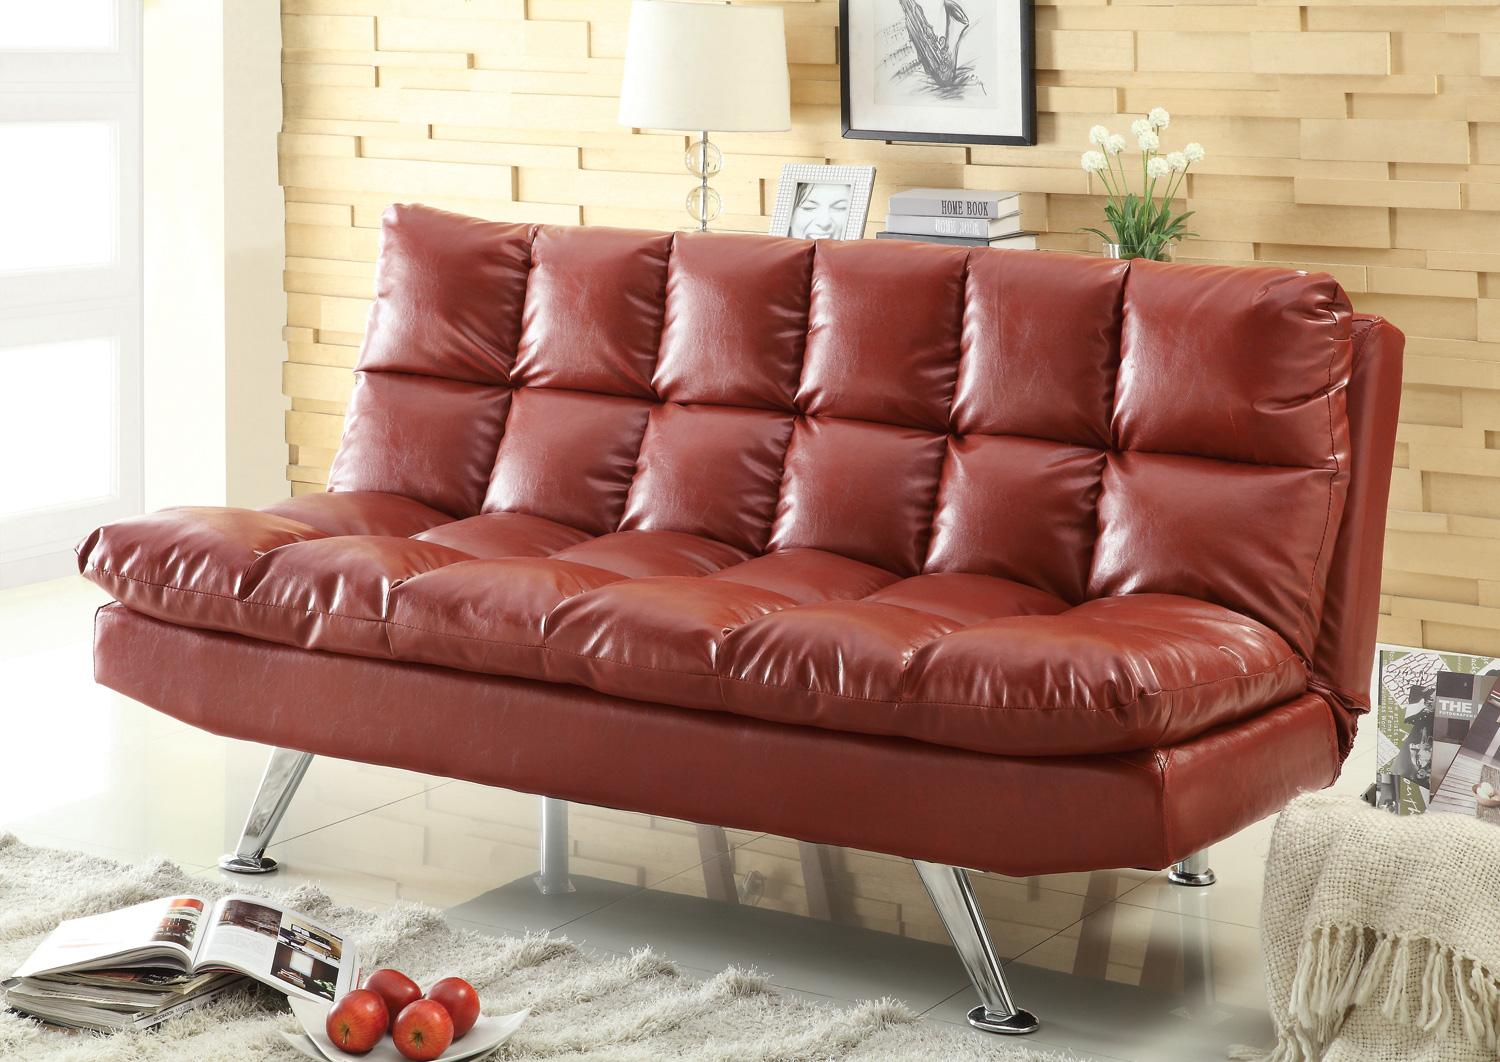 black vinyl futon sofa sofas for sale in los angeles futons